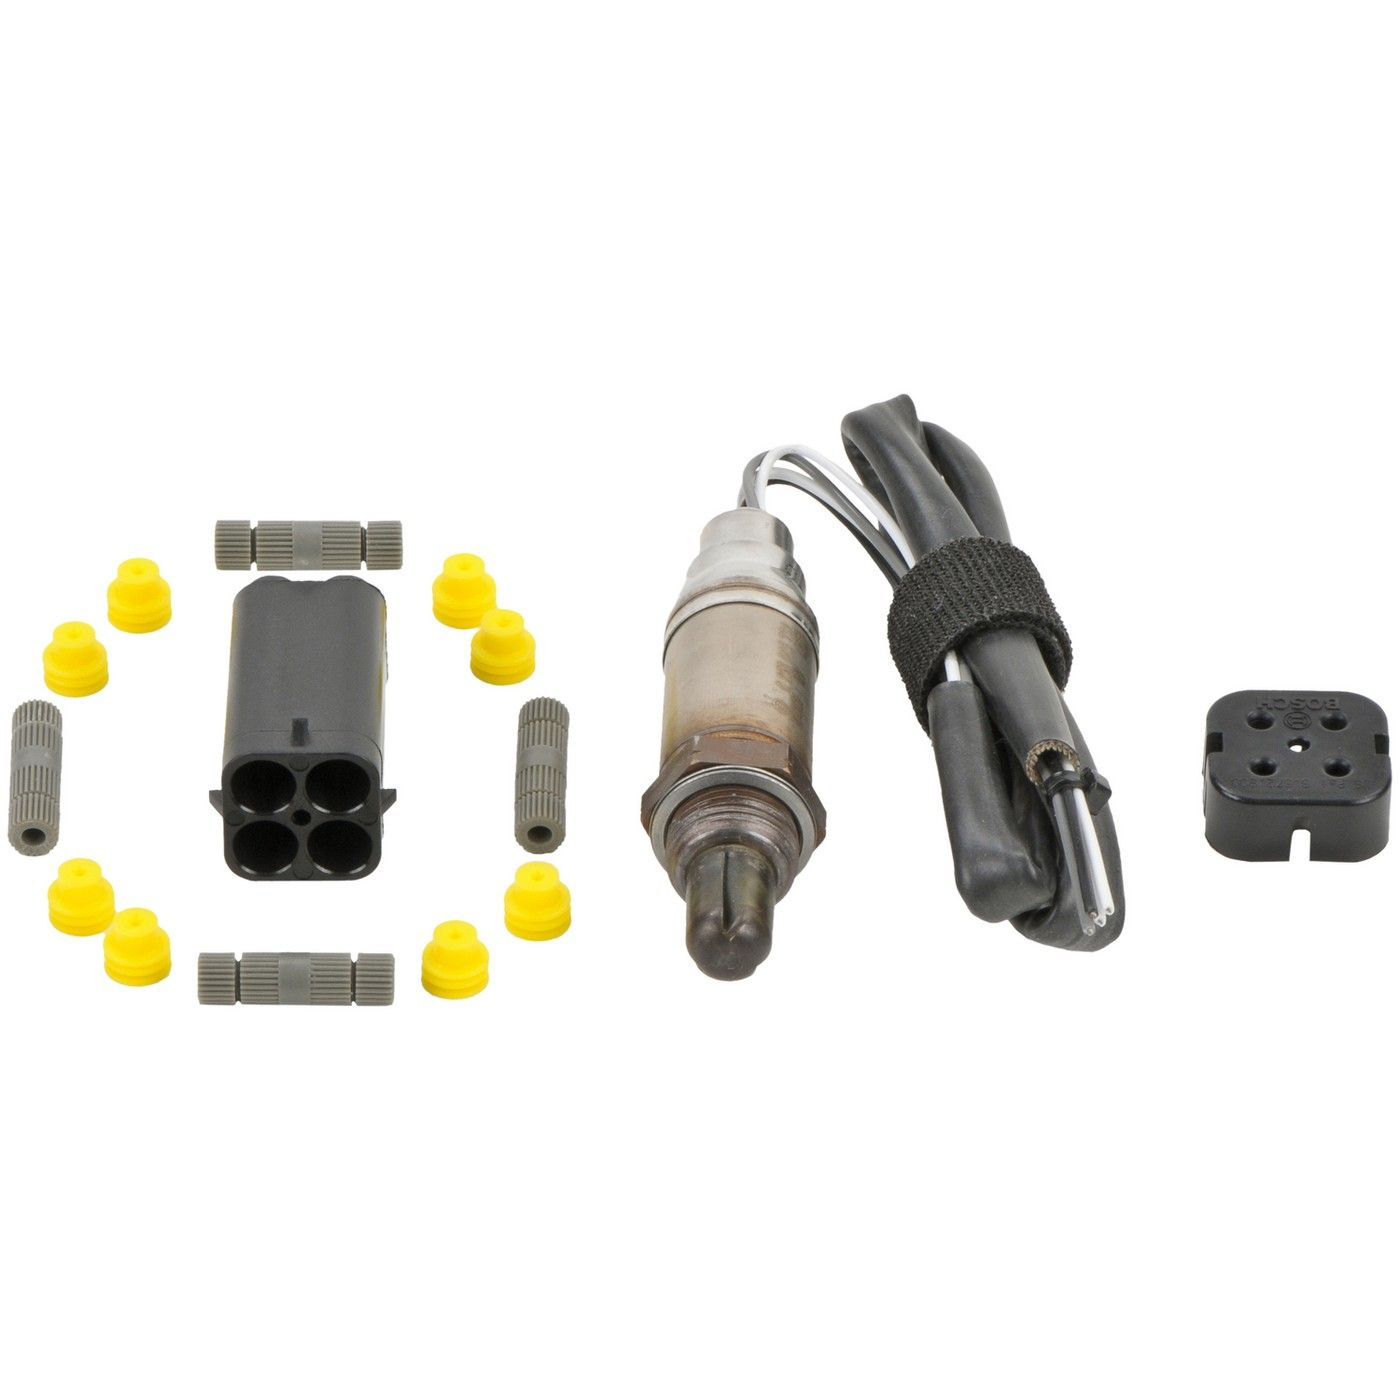 Af E Ec B C E A Ddd V likewise  further  likewise Airbag further Gm. on 2002 buick rendezvous oxygen sensor location